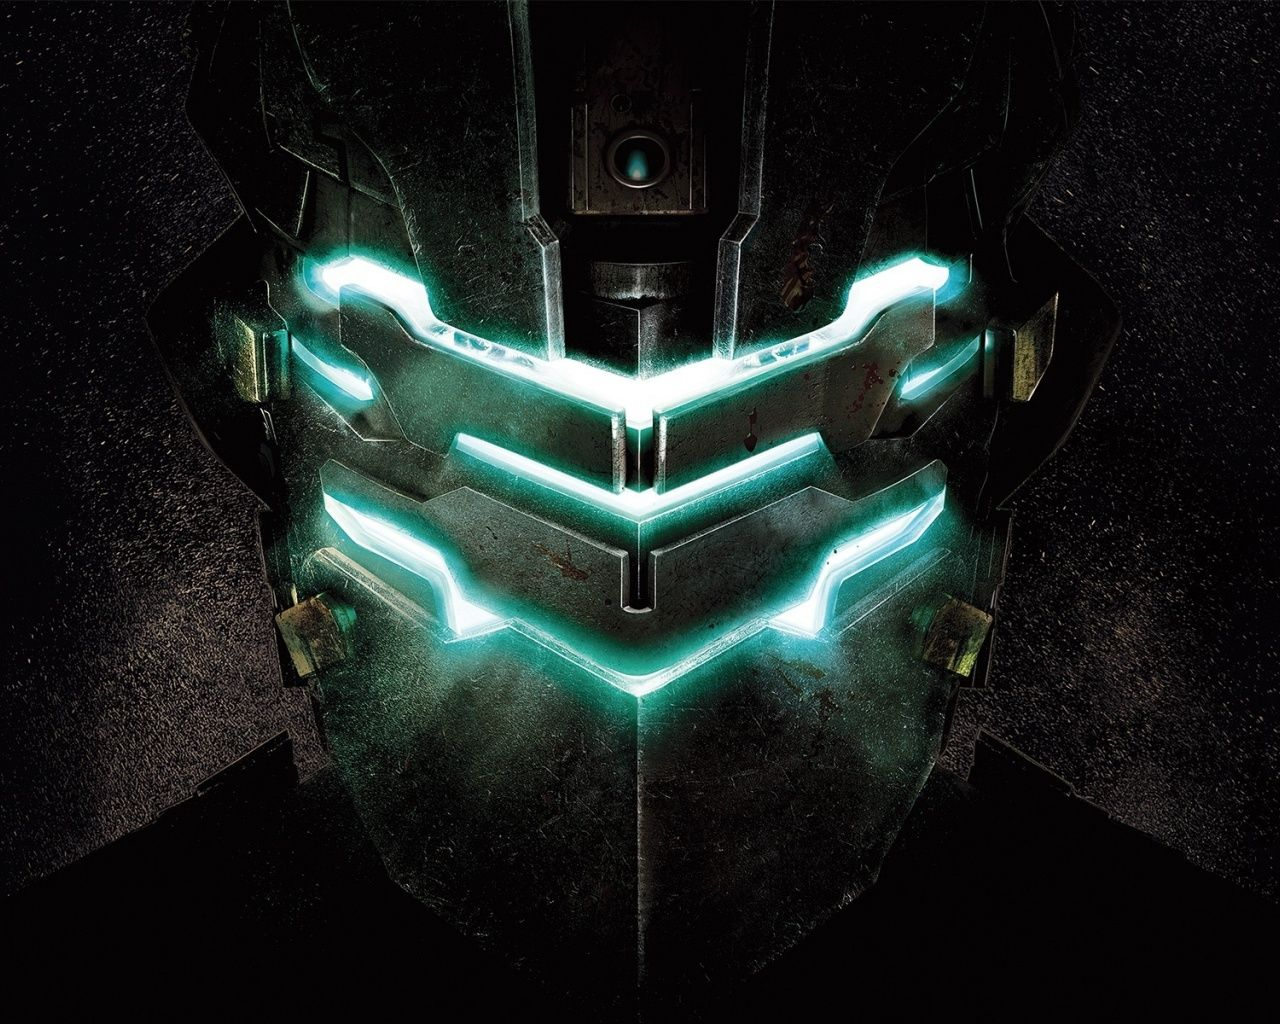 Dead Space 2 1280x1024 Wallpapers, 1280x1024 Wallpapers & Pictures